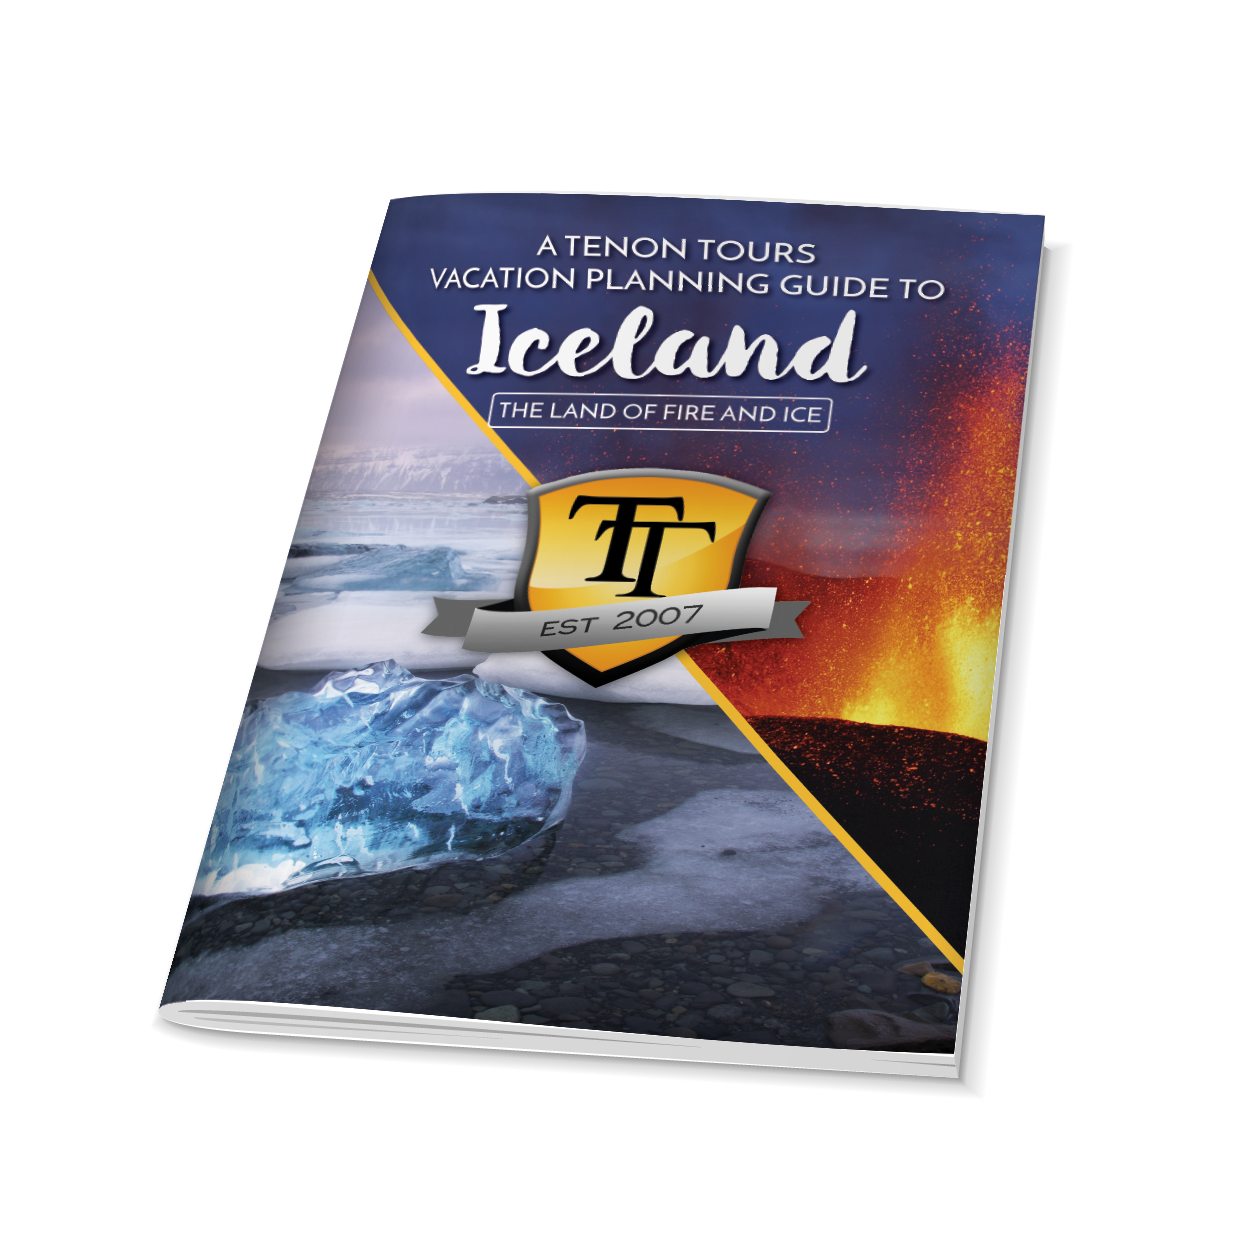 Iceland-vacation-guide.png